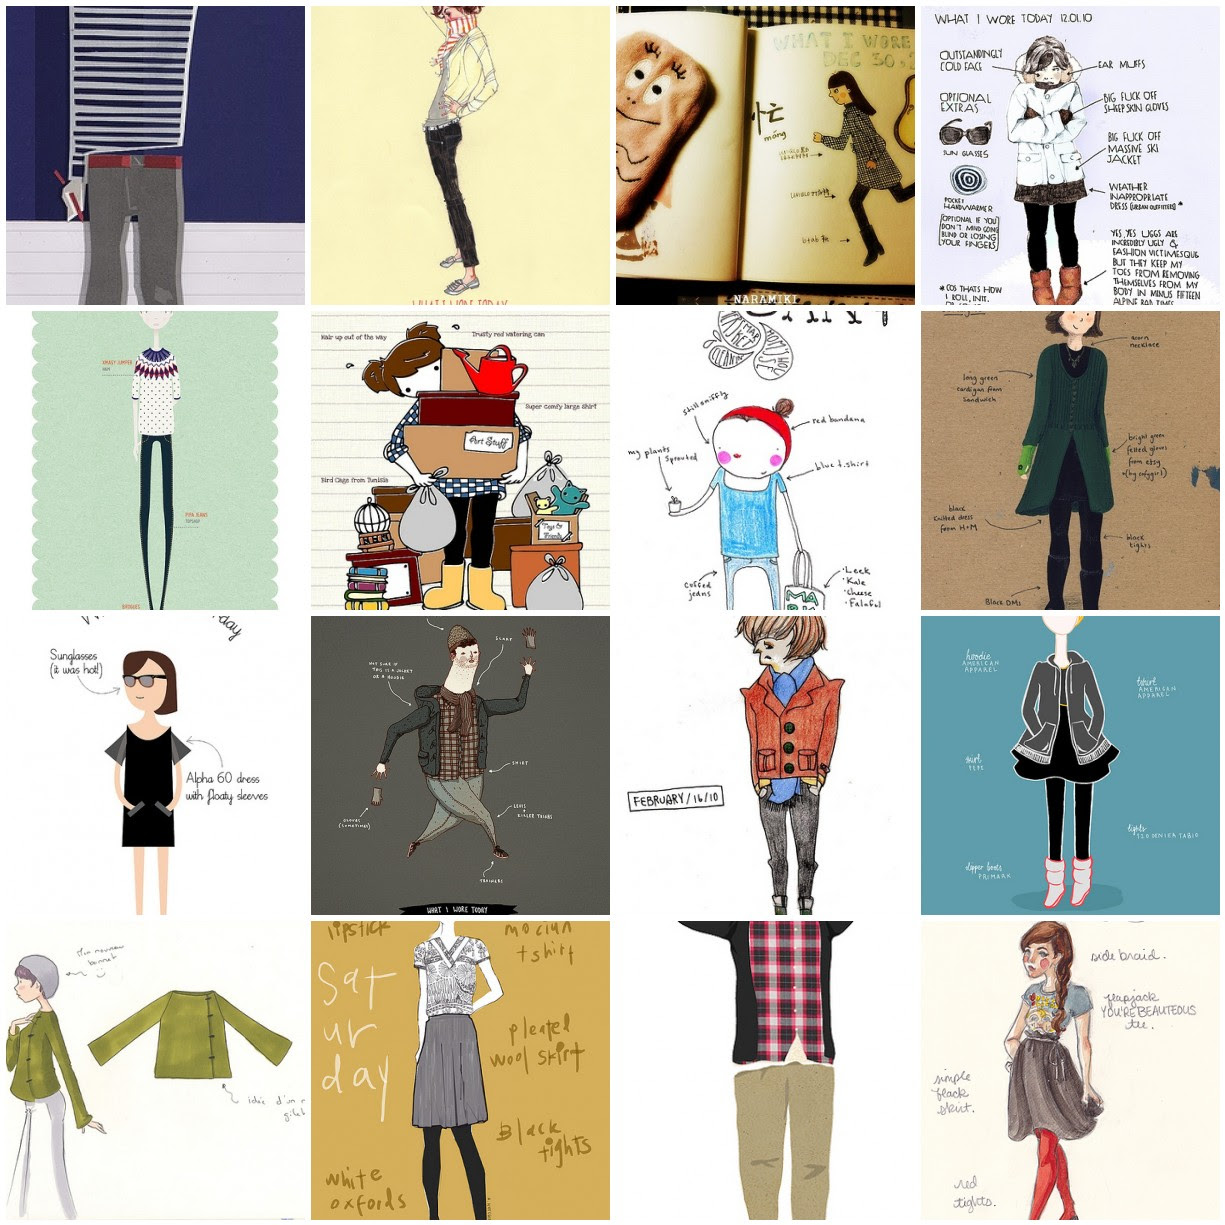 what i wore - illustrations